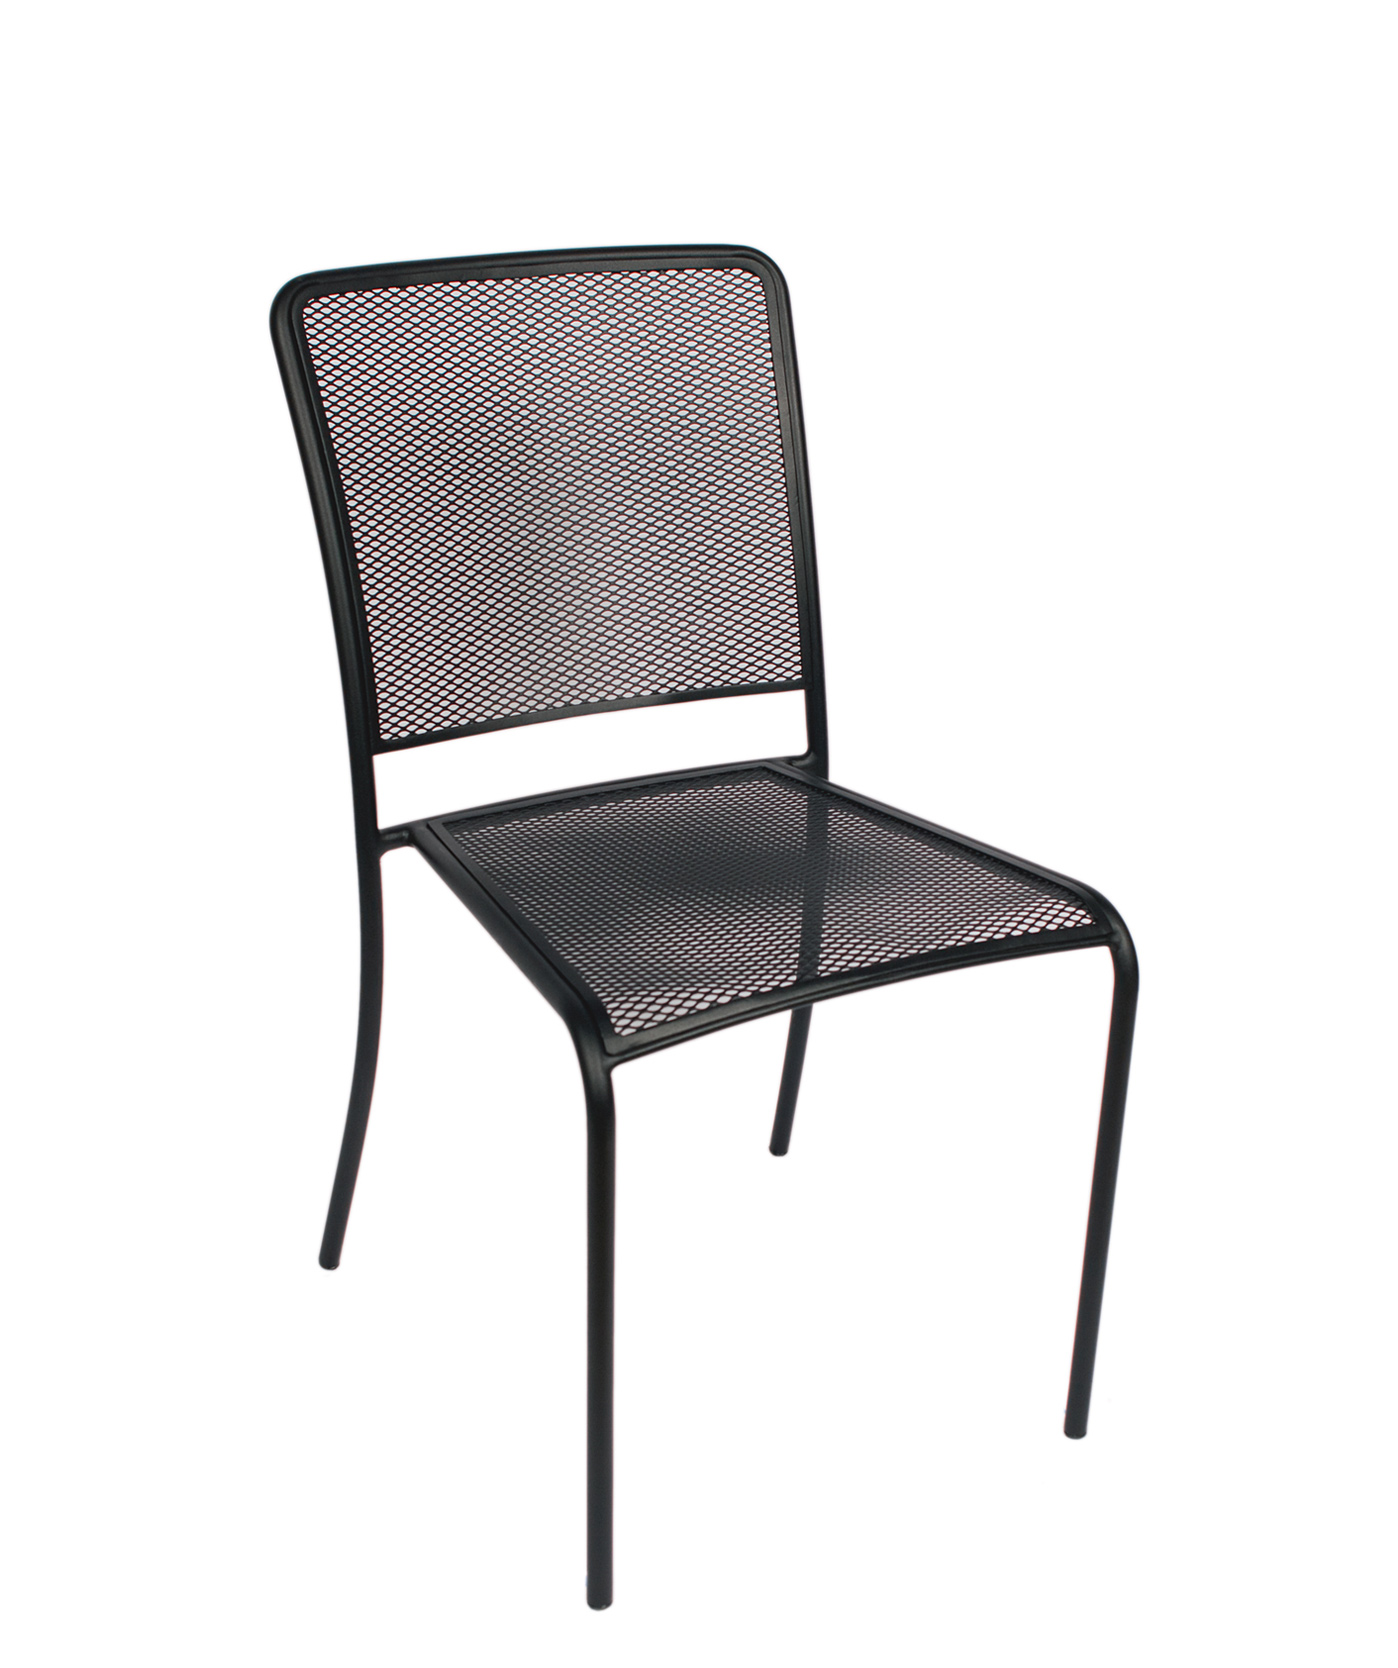 Chesapeake Outdoor Side Chair Micro Mesh Seat & Back Powder Coated